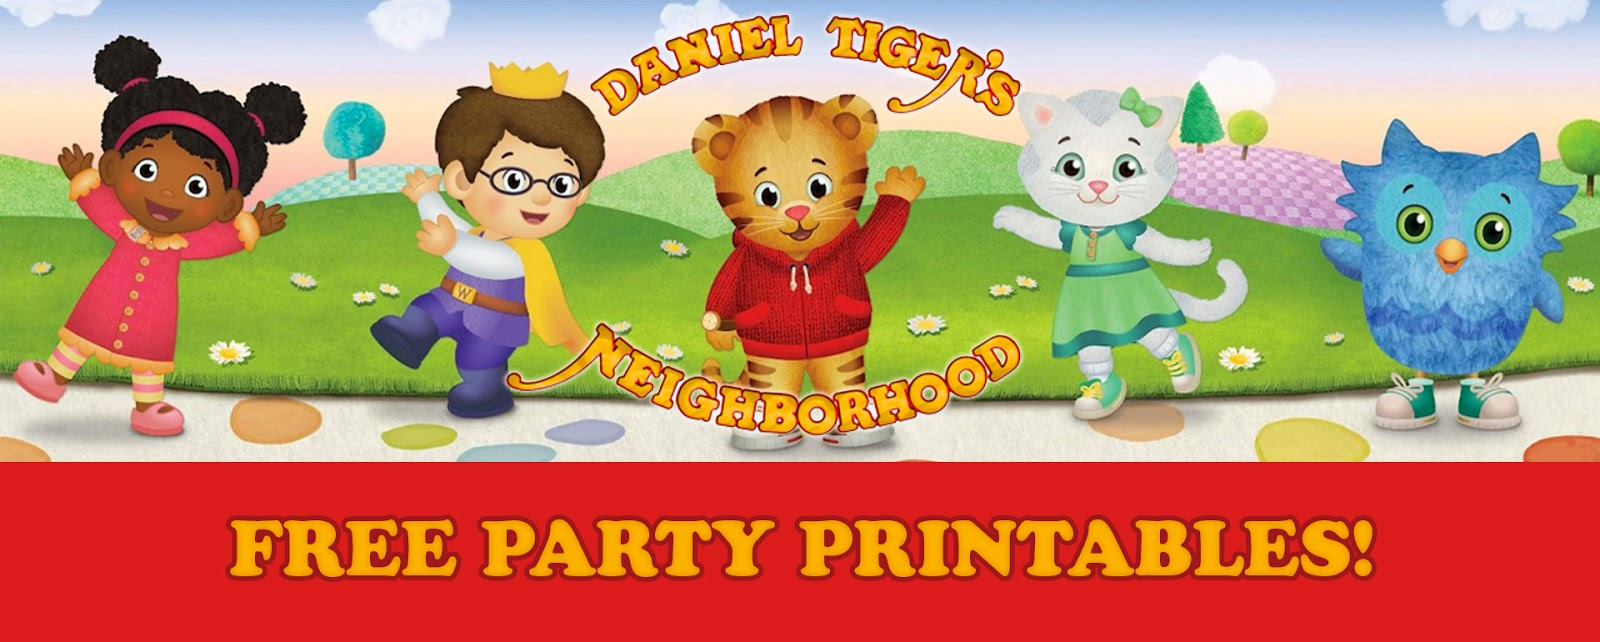 picture about Daniel Tiger Printable titled Daniel Tiger Birthday Social gathering Printables Totally free Downloads